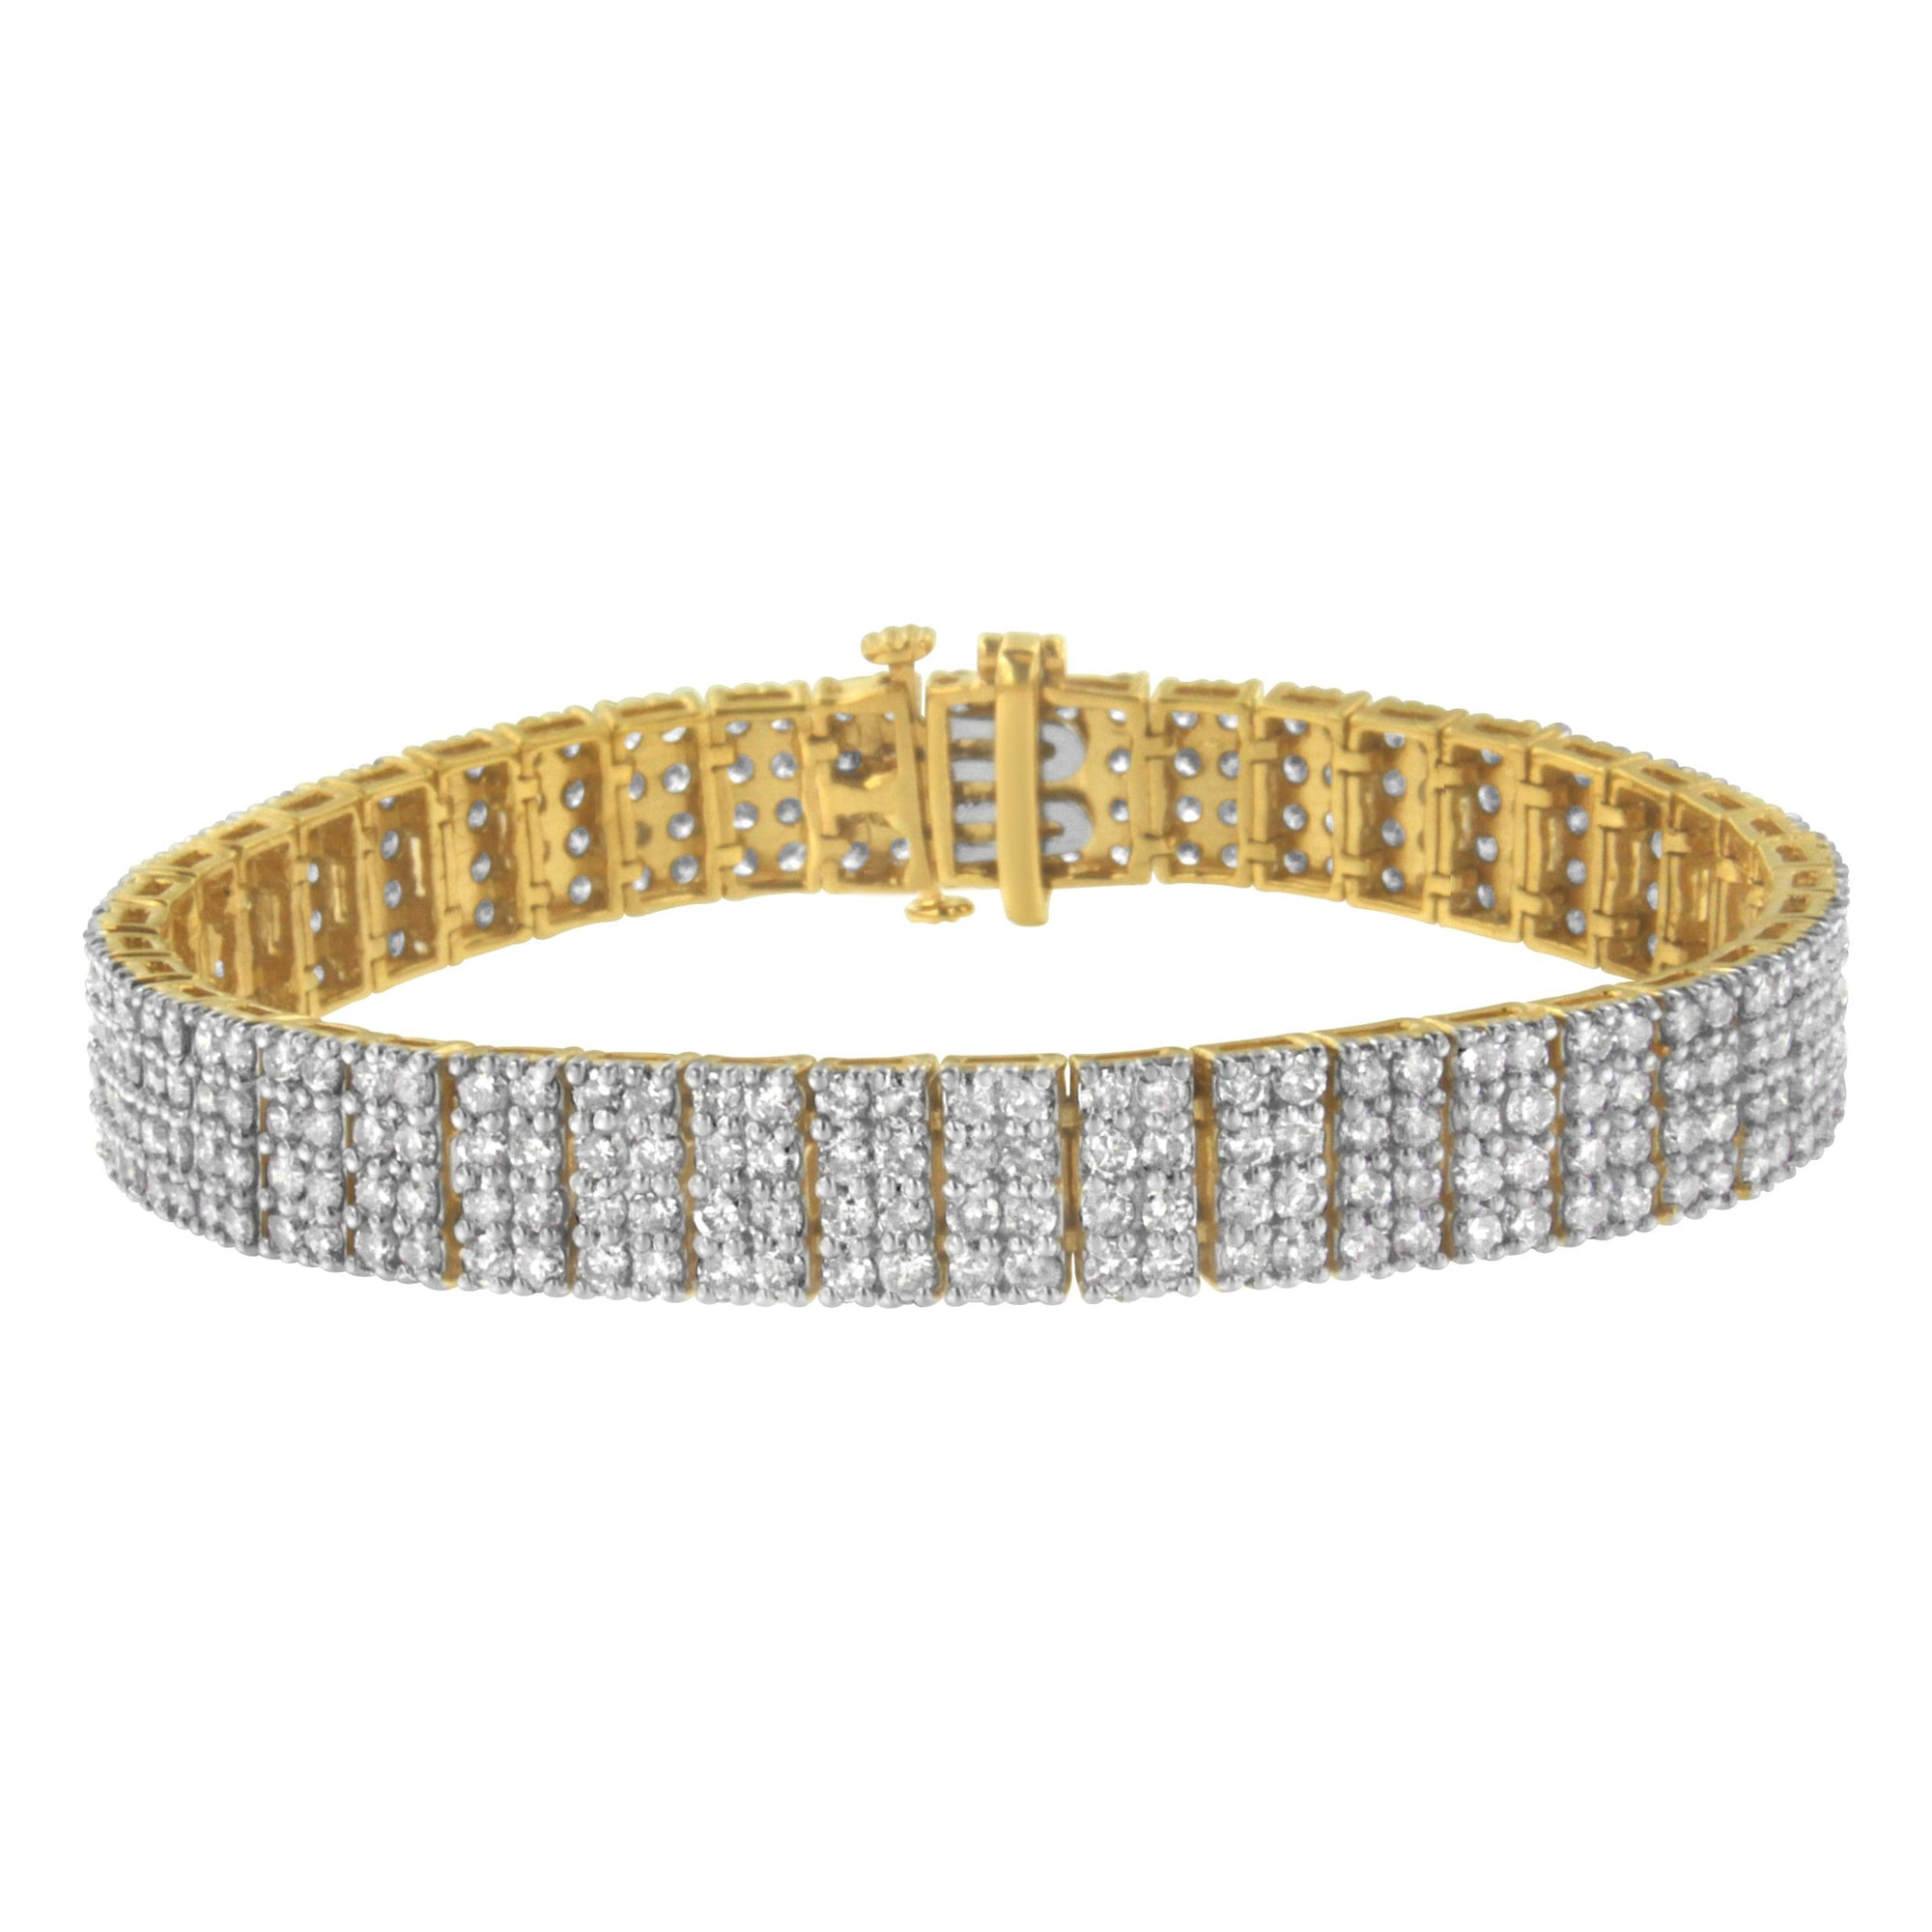 14K Yellow Gold Plated Sterling Silver Diamond Tennis Bracelet